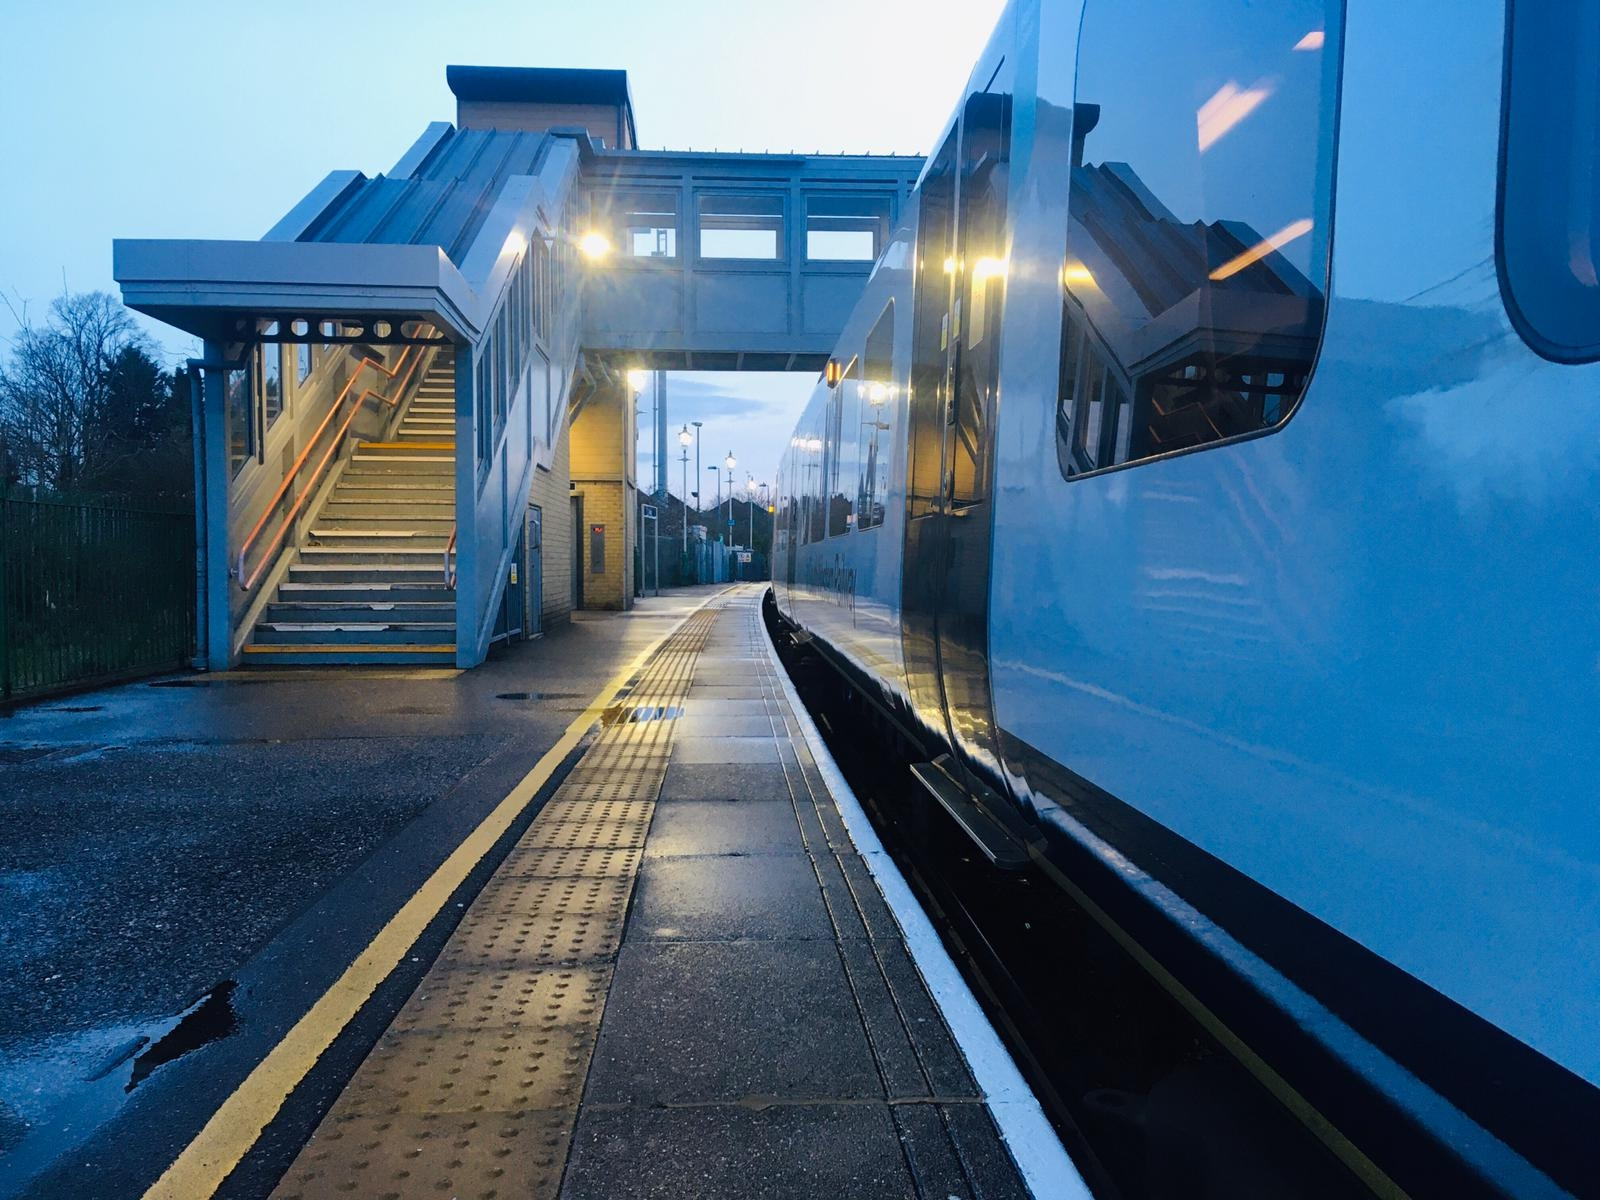 Early Morning at Alton Railway Station in Hampshire.